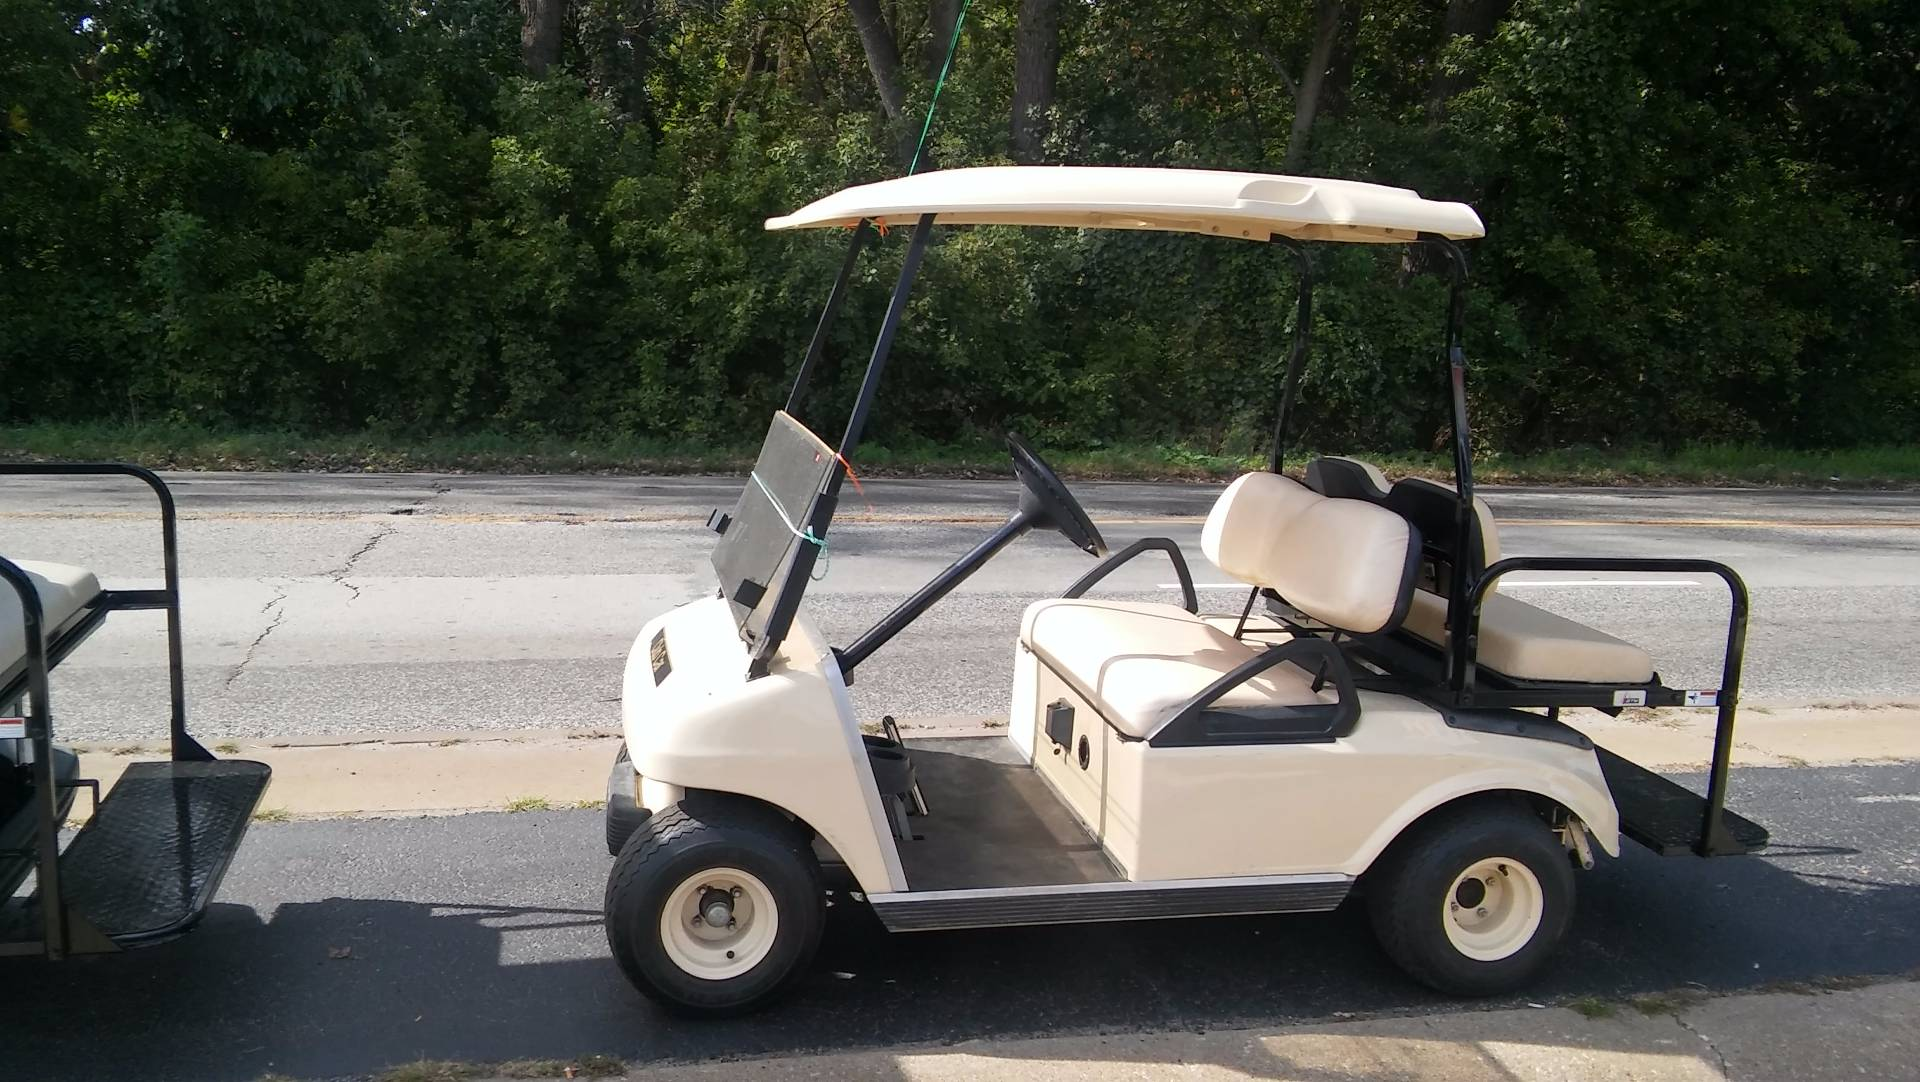 2004 Club Car DS Electric Golf Car in Forest View, Illinois